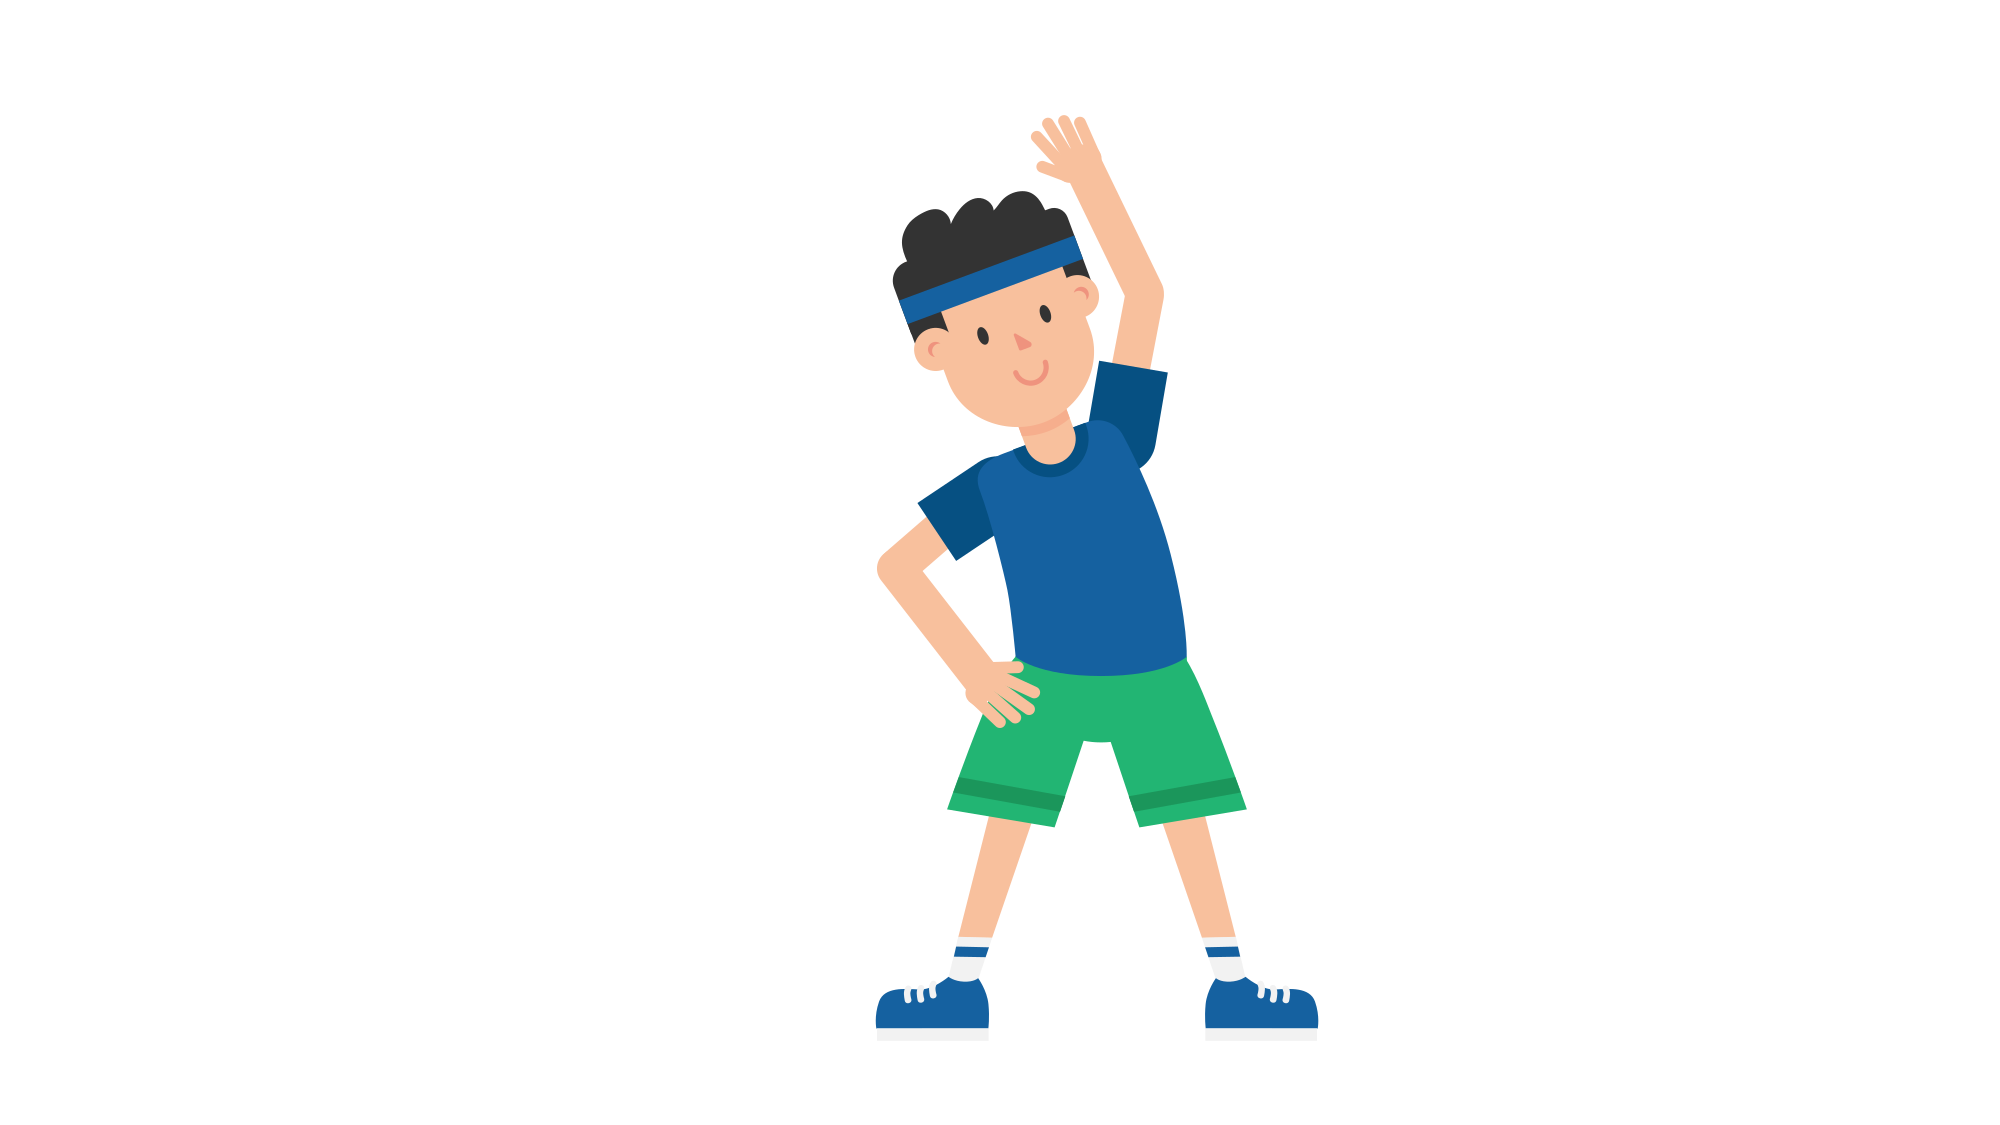 Exercising clipart exercise man. File doing warm up